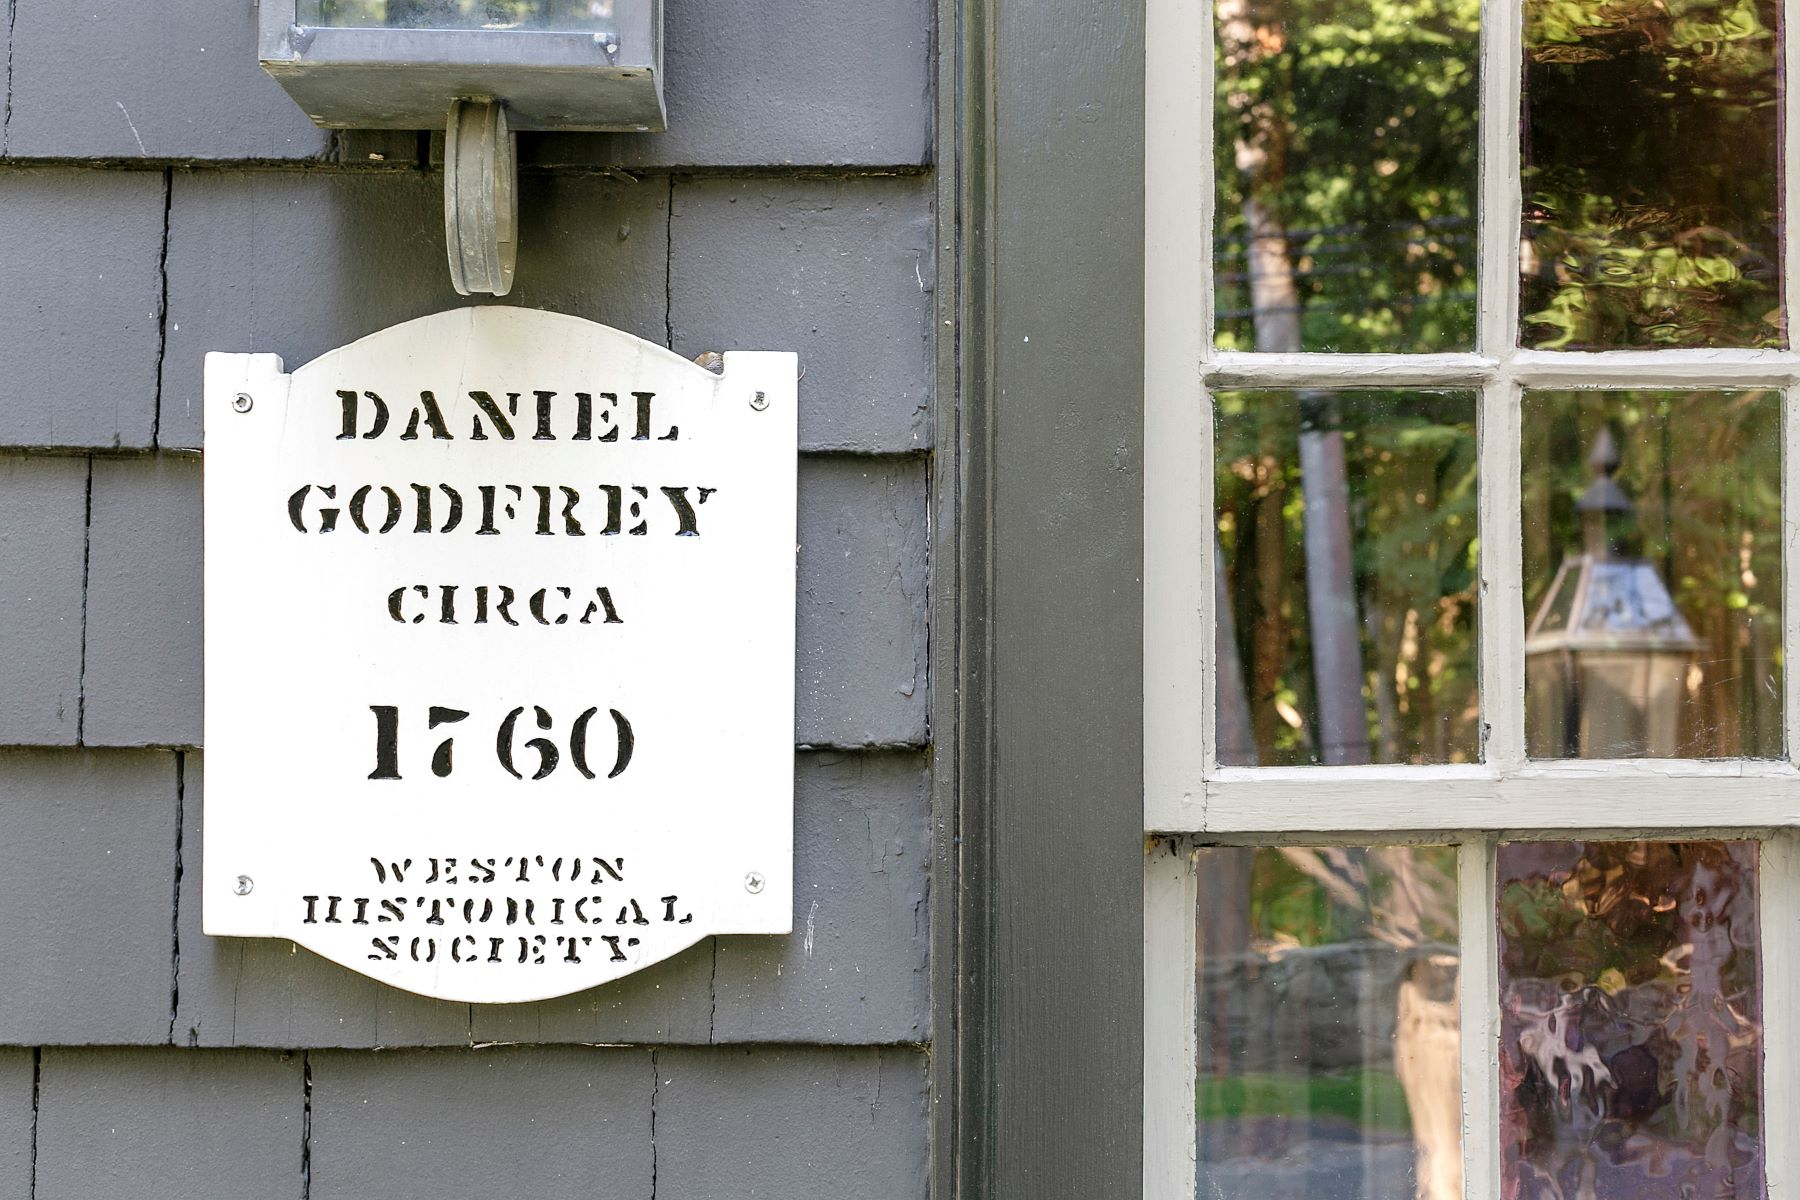 Single Family Home for Sale at The Captain Daniel Godfrey House (c. 1760) 4 Norfield Rd Weston, Connecticut 06883 United States